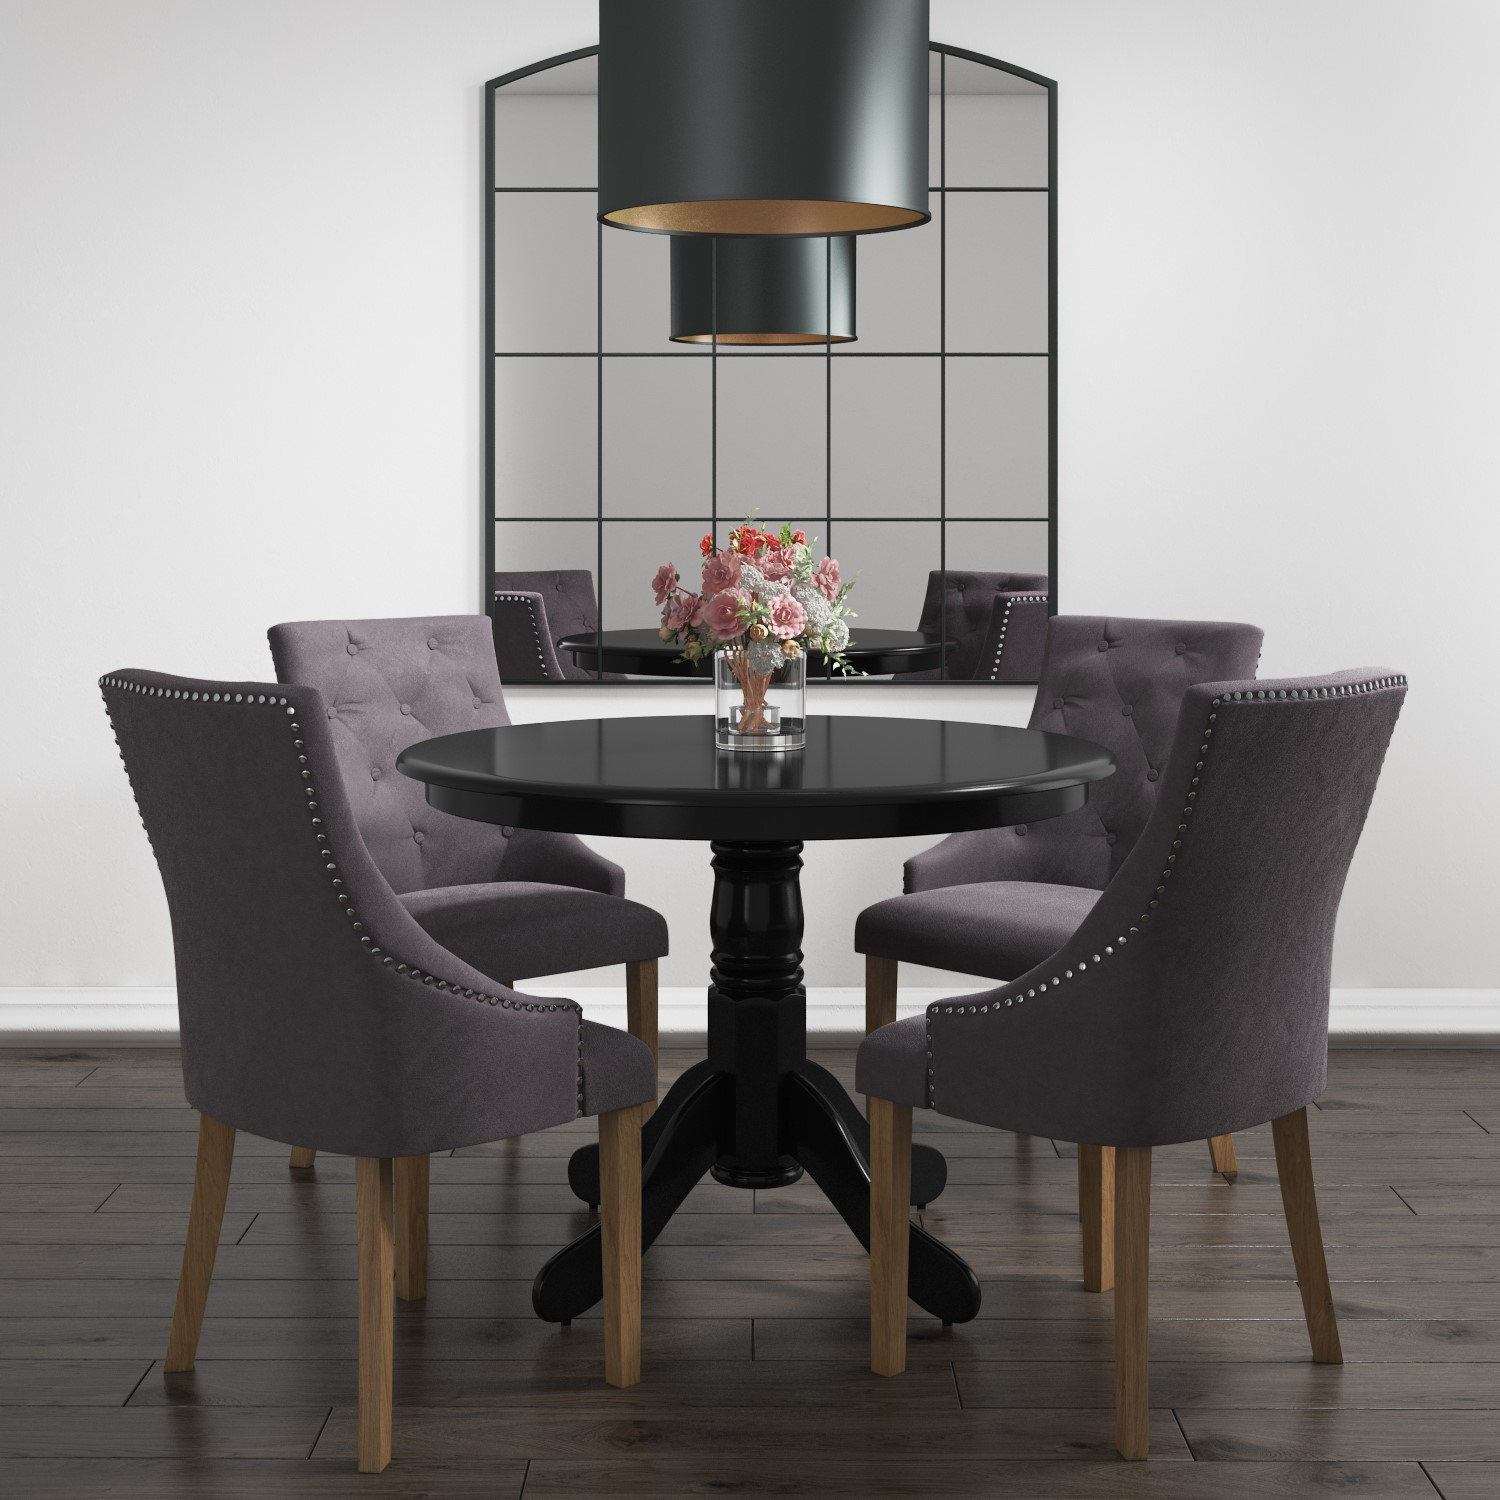 Round Dining Room Table Seats 12: Round Dining Table In Black - 4 Seater 5056096014556